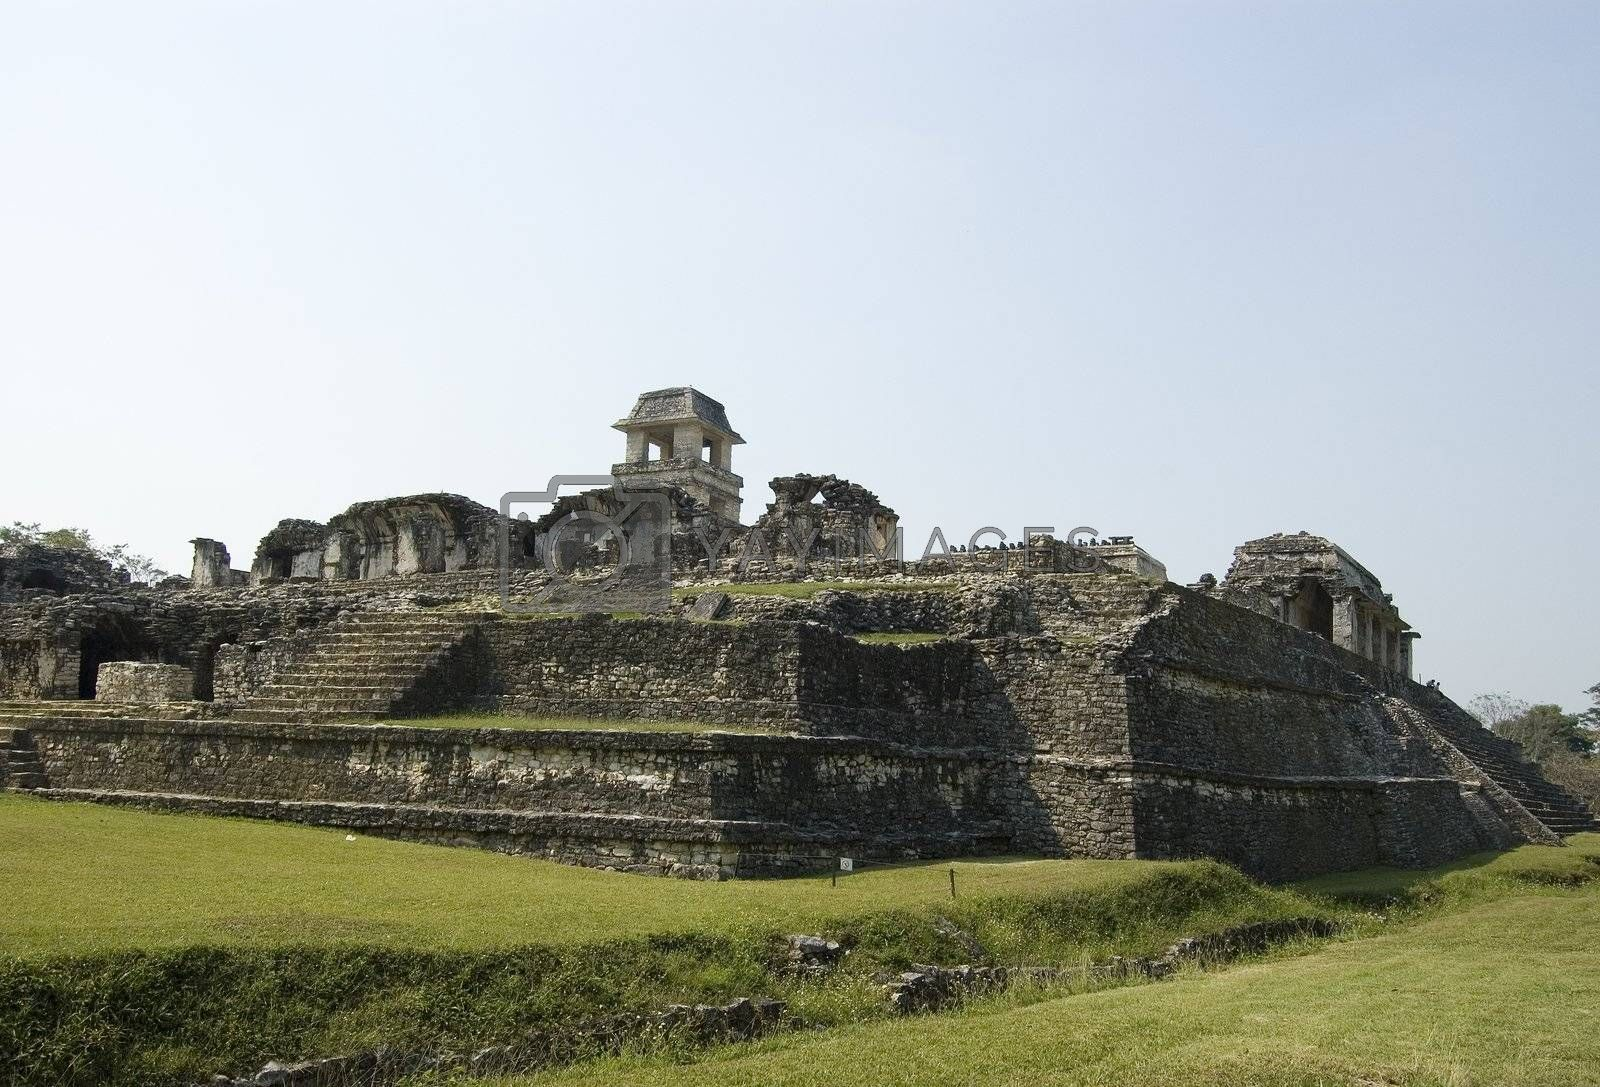 Mayan Castle showing the stairs at Palenqe Ruins in Chiapas, Mexico